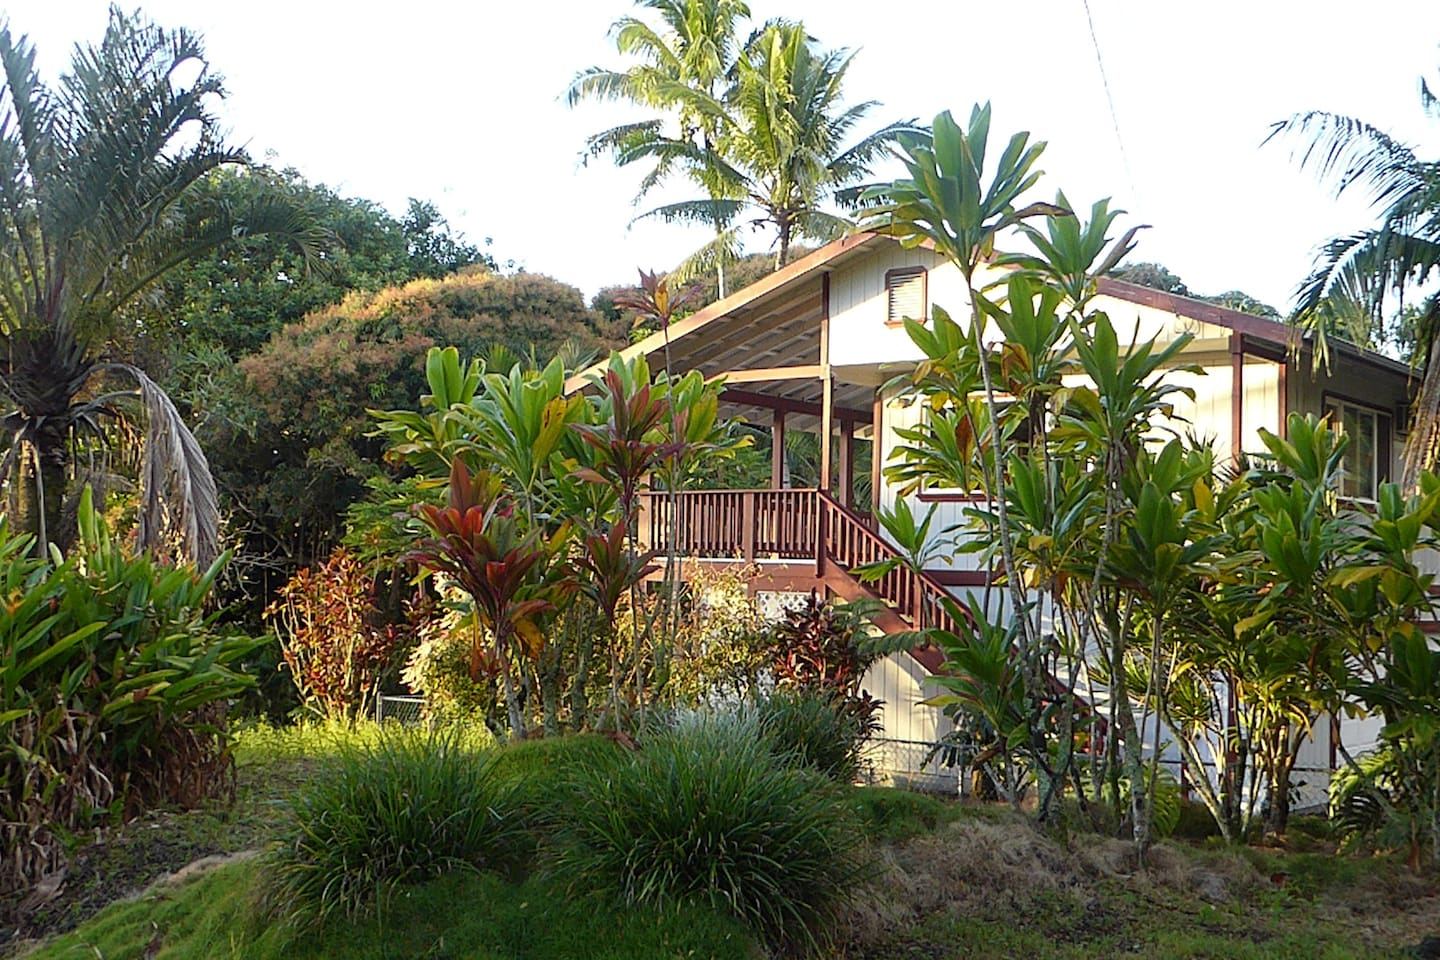 Lush tropical plants surround the house.